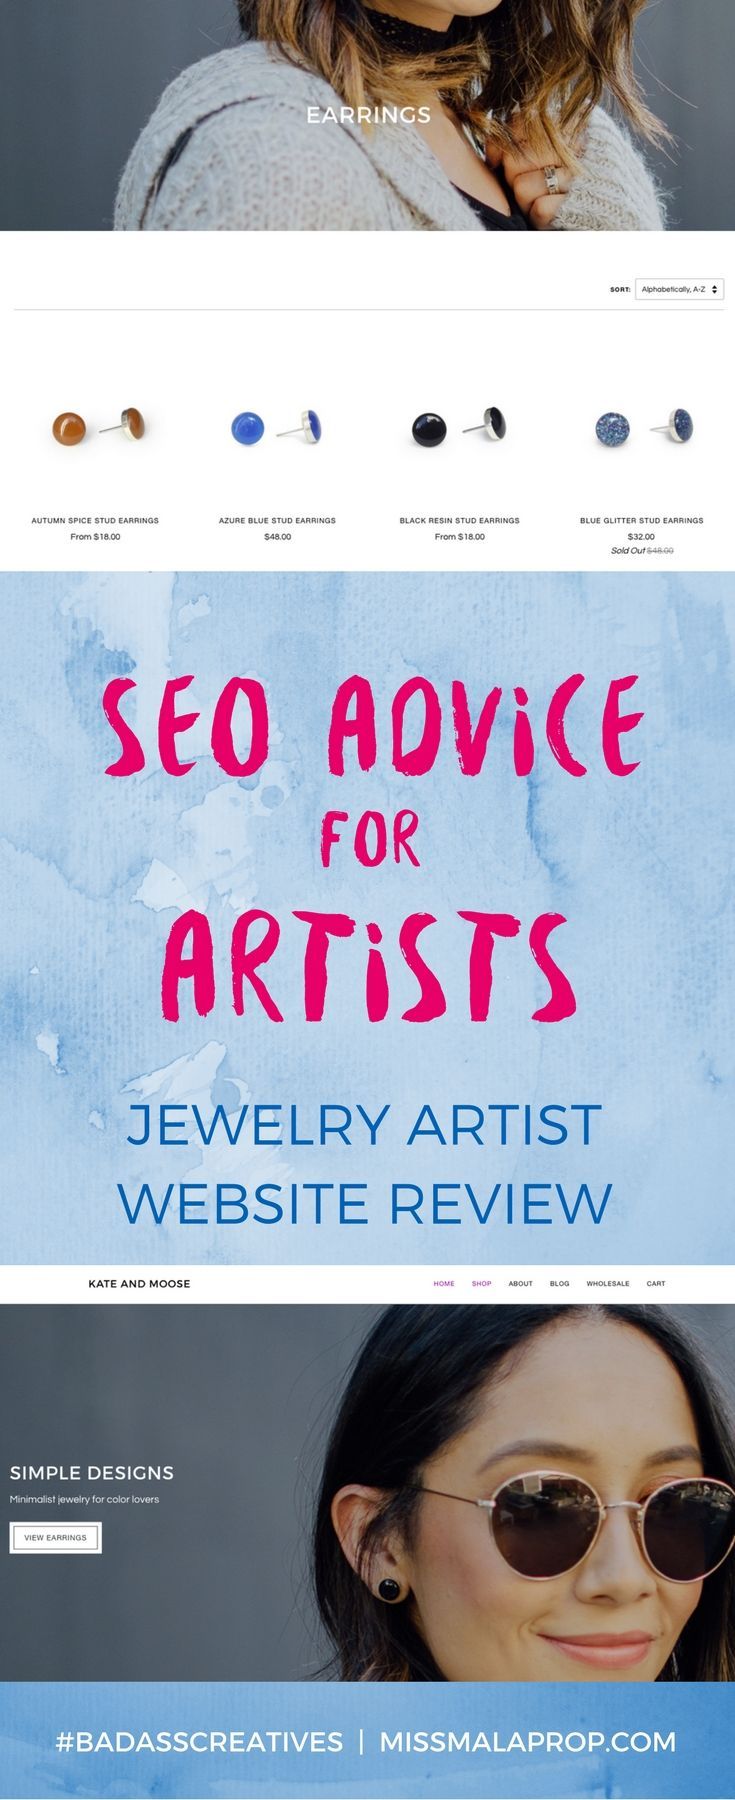 In this website review, I'm going to be offering up some SEO advice for artists by looking at the website of jewelry artist Kate & Moose. While her website looks great overall, there are some ways that this handmade jewelry website could be improved to get more search engine traffic and to sell more of Kate's gorgeous handmade jewelry.